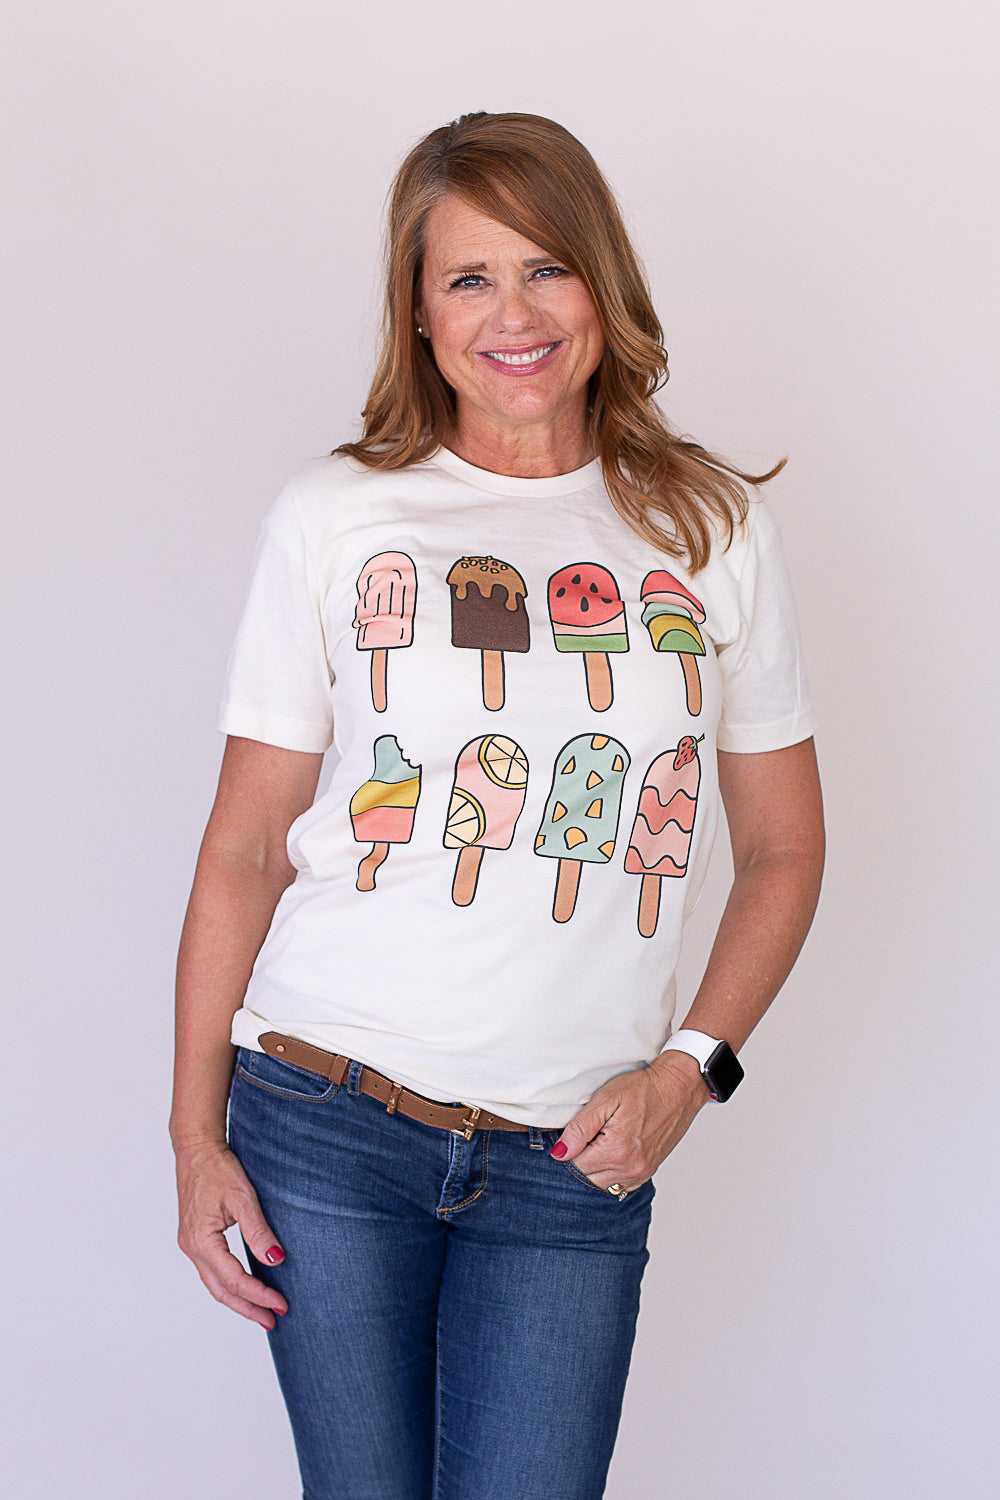 Summer Sweets T-shirt